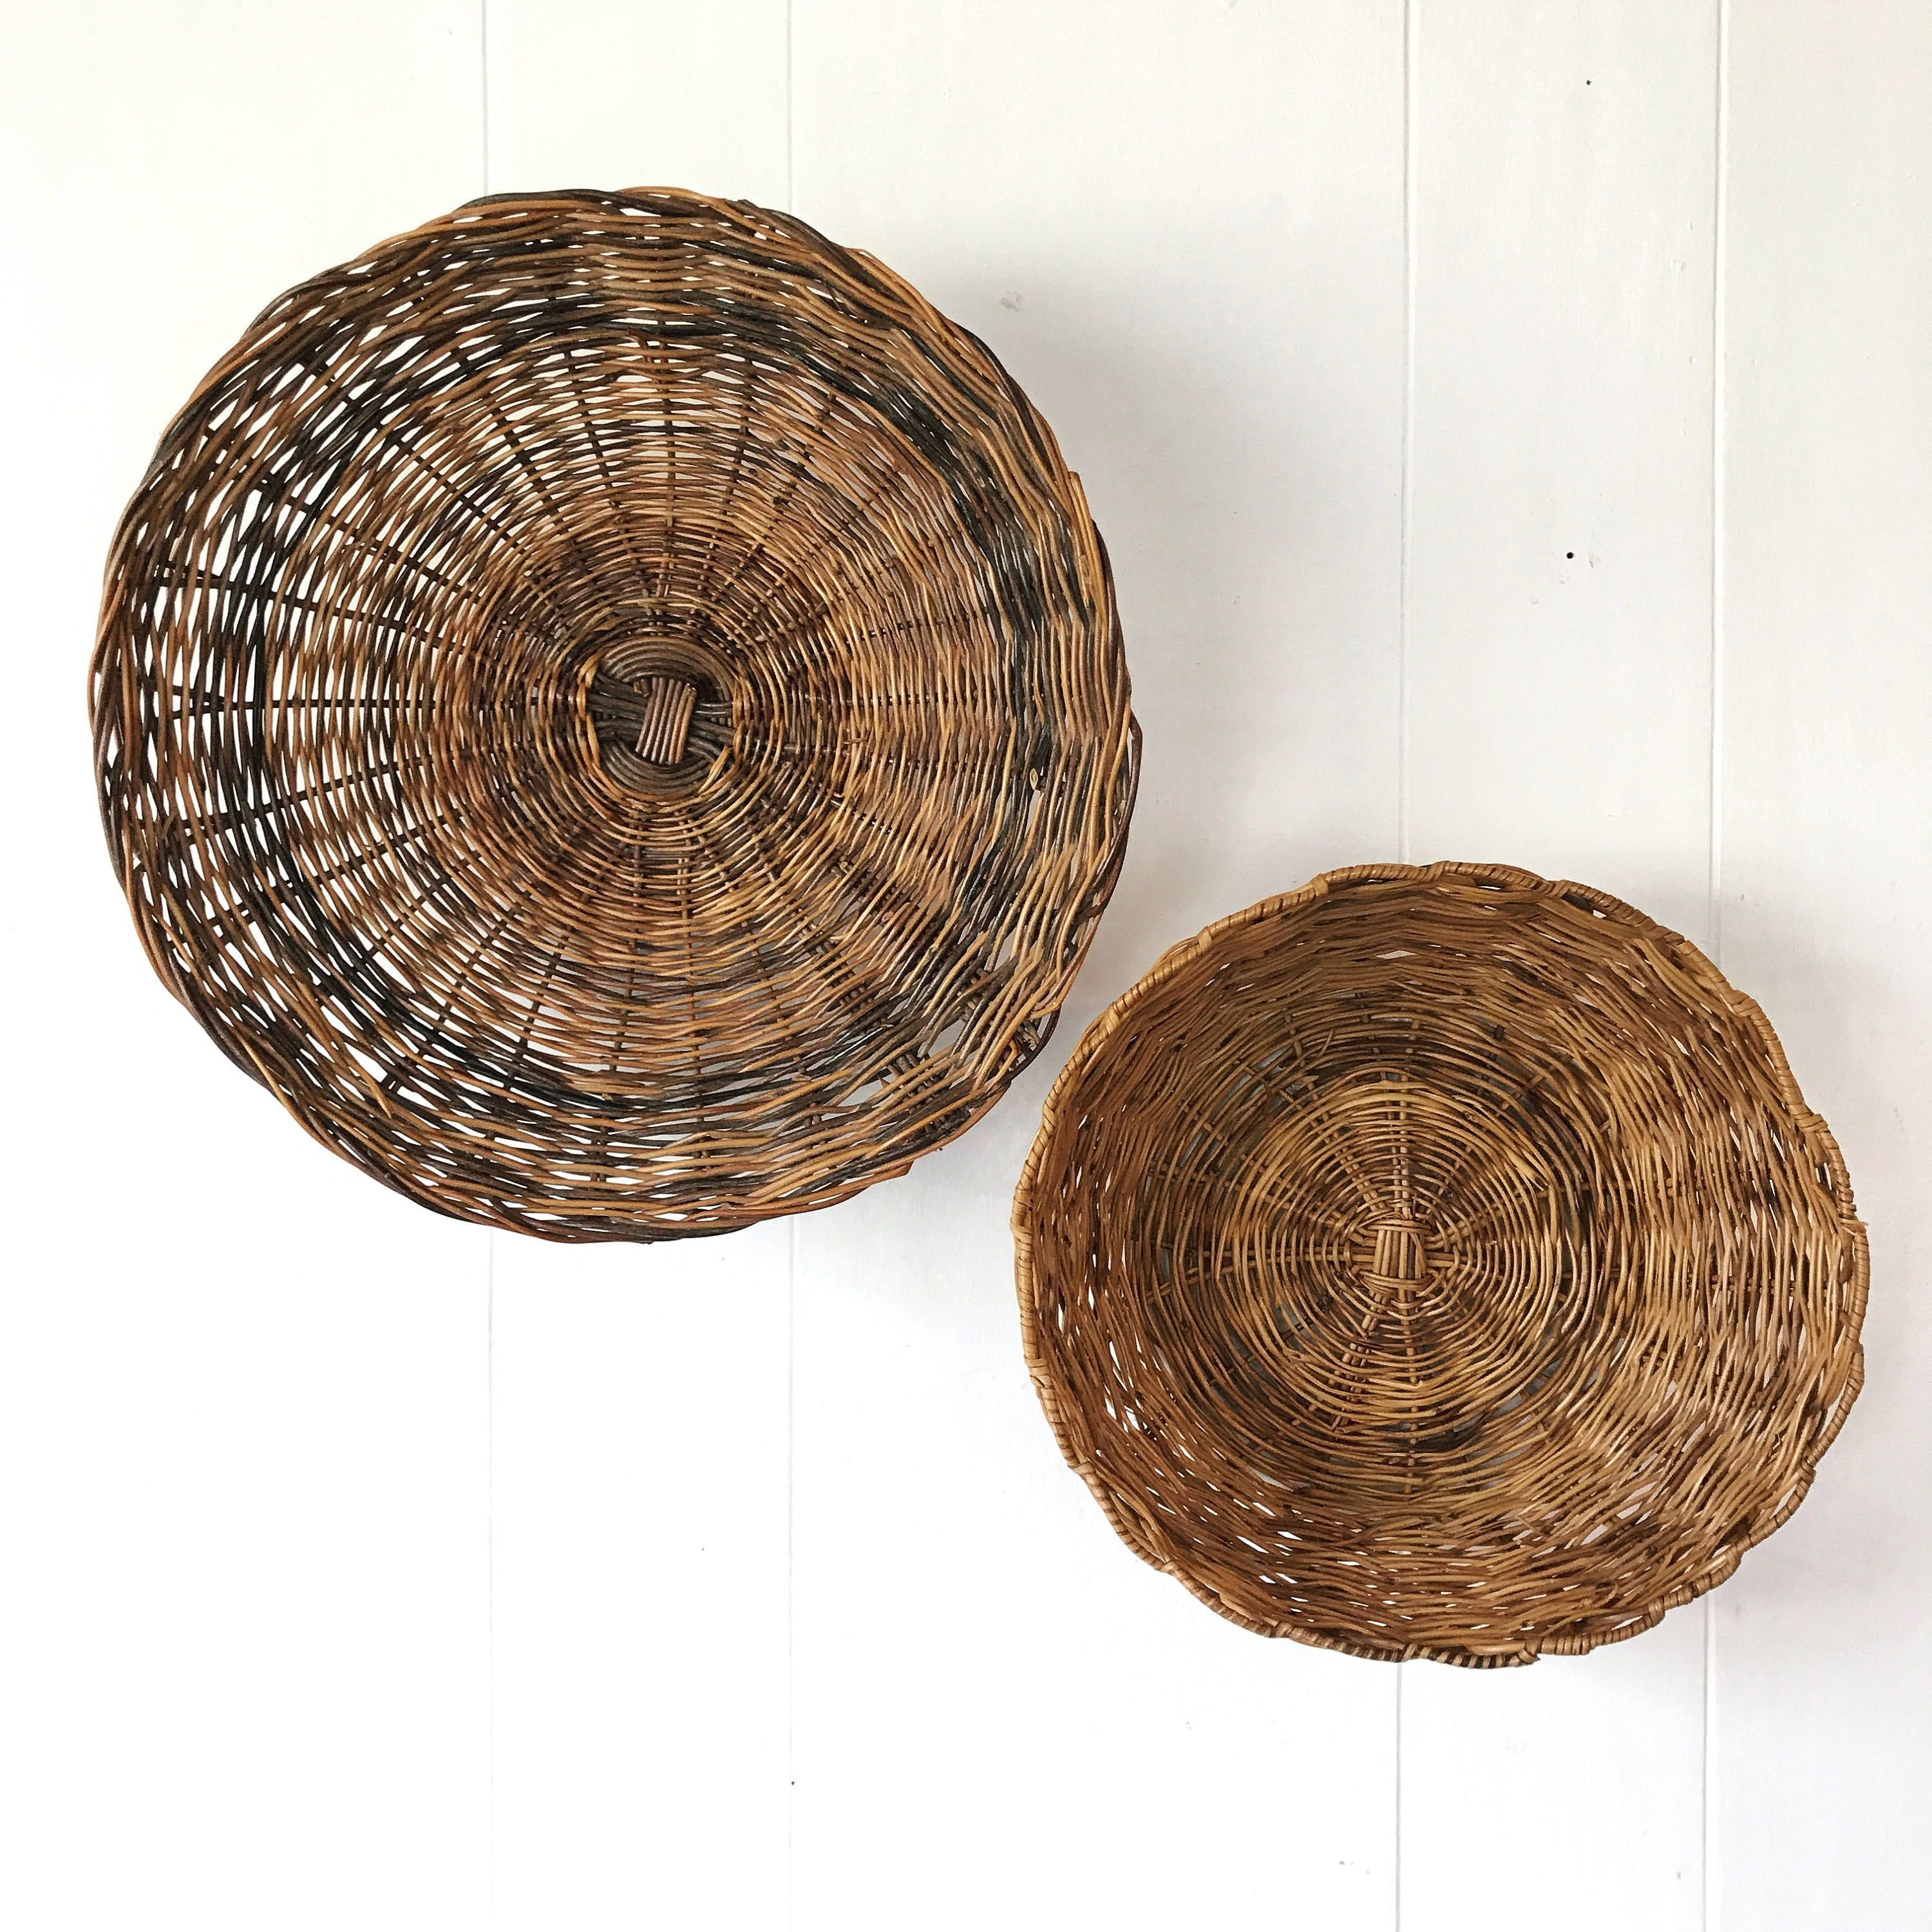 woven bamboo basket - round dark brown wicker bowl - boho wall ...